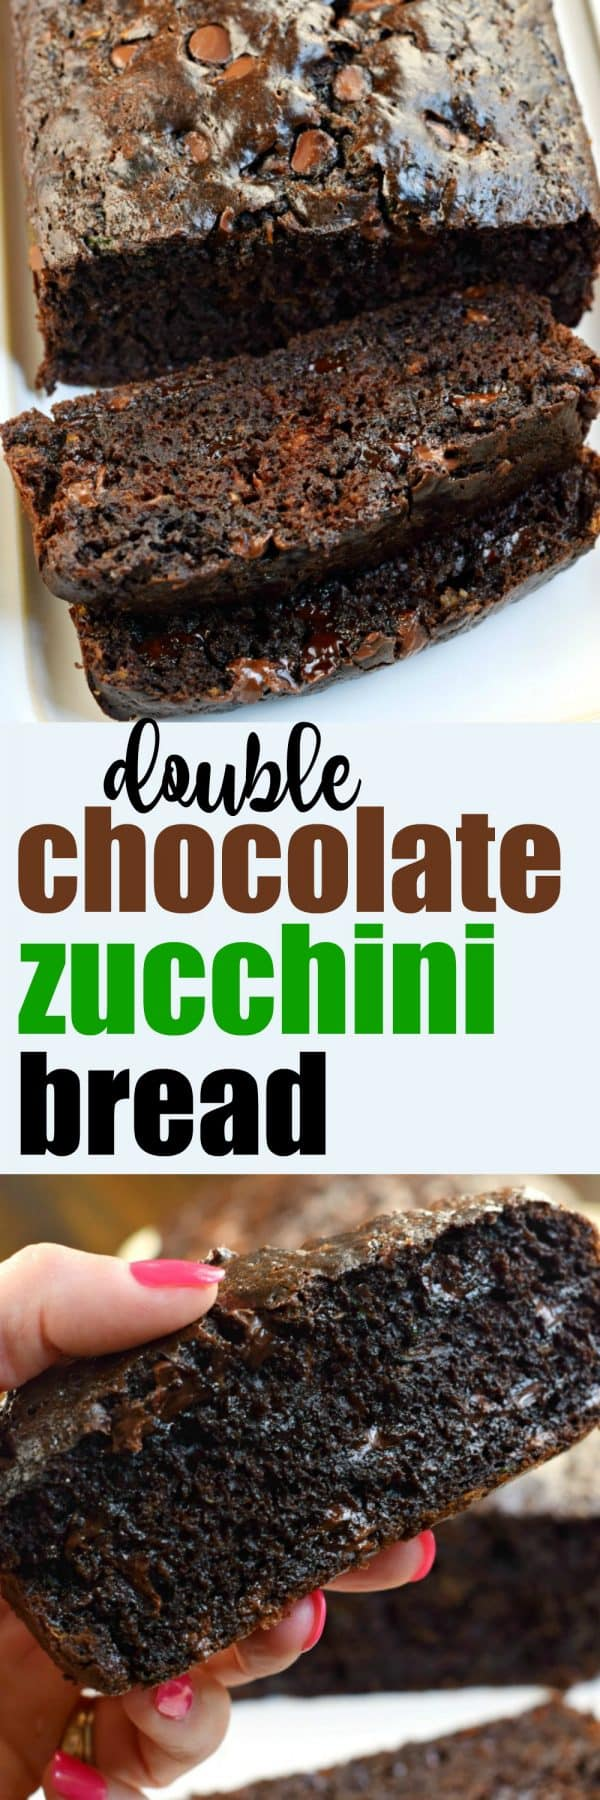 Double Chocolate Zucchini Bread recipe #freezerfriendly #zucchini #chocolate